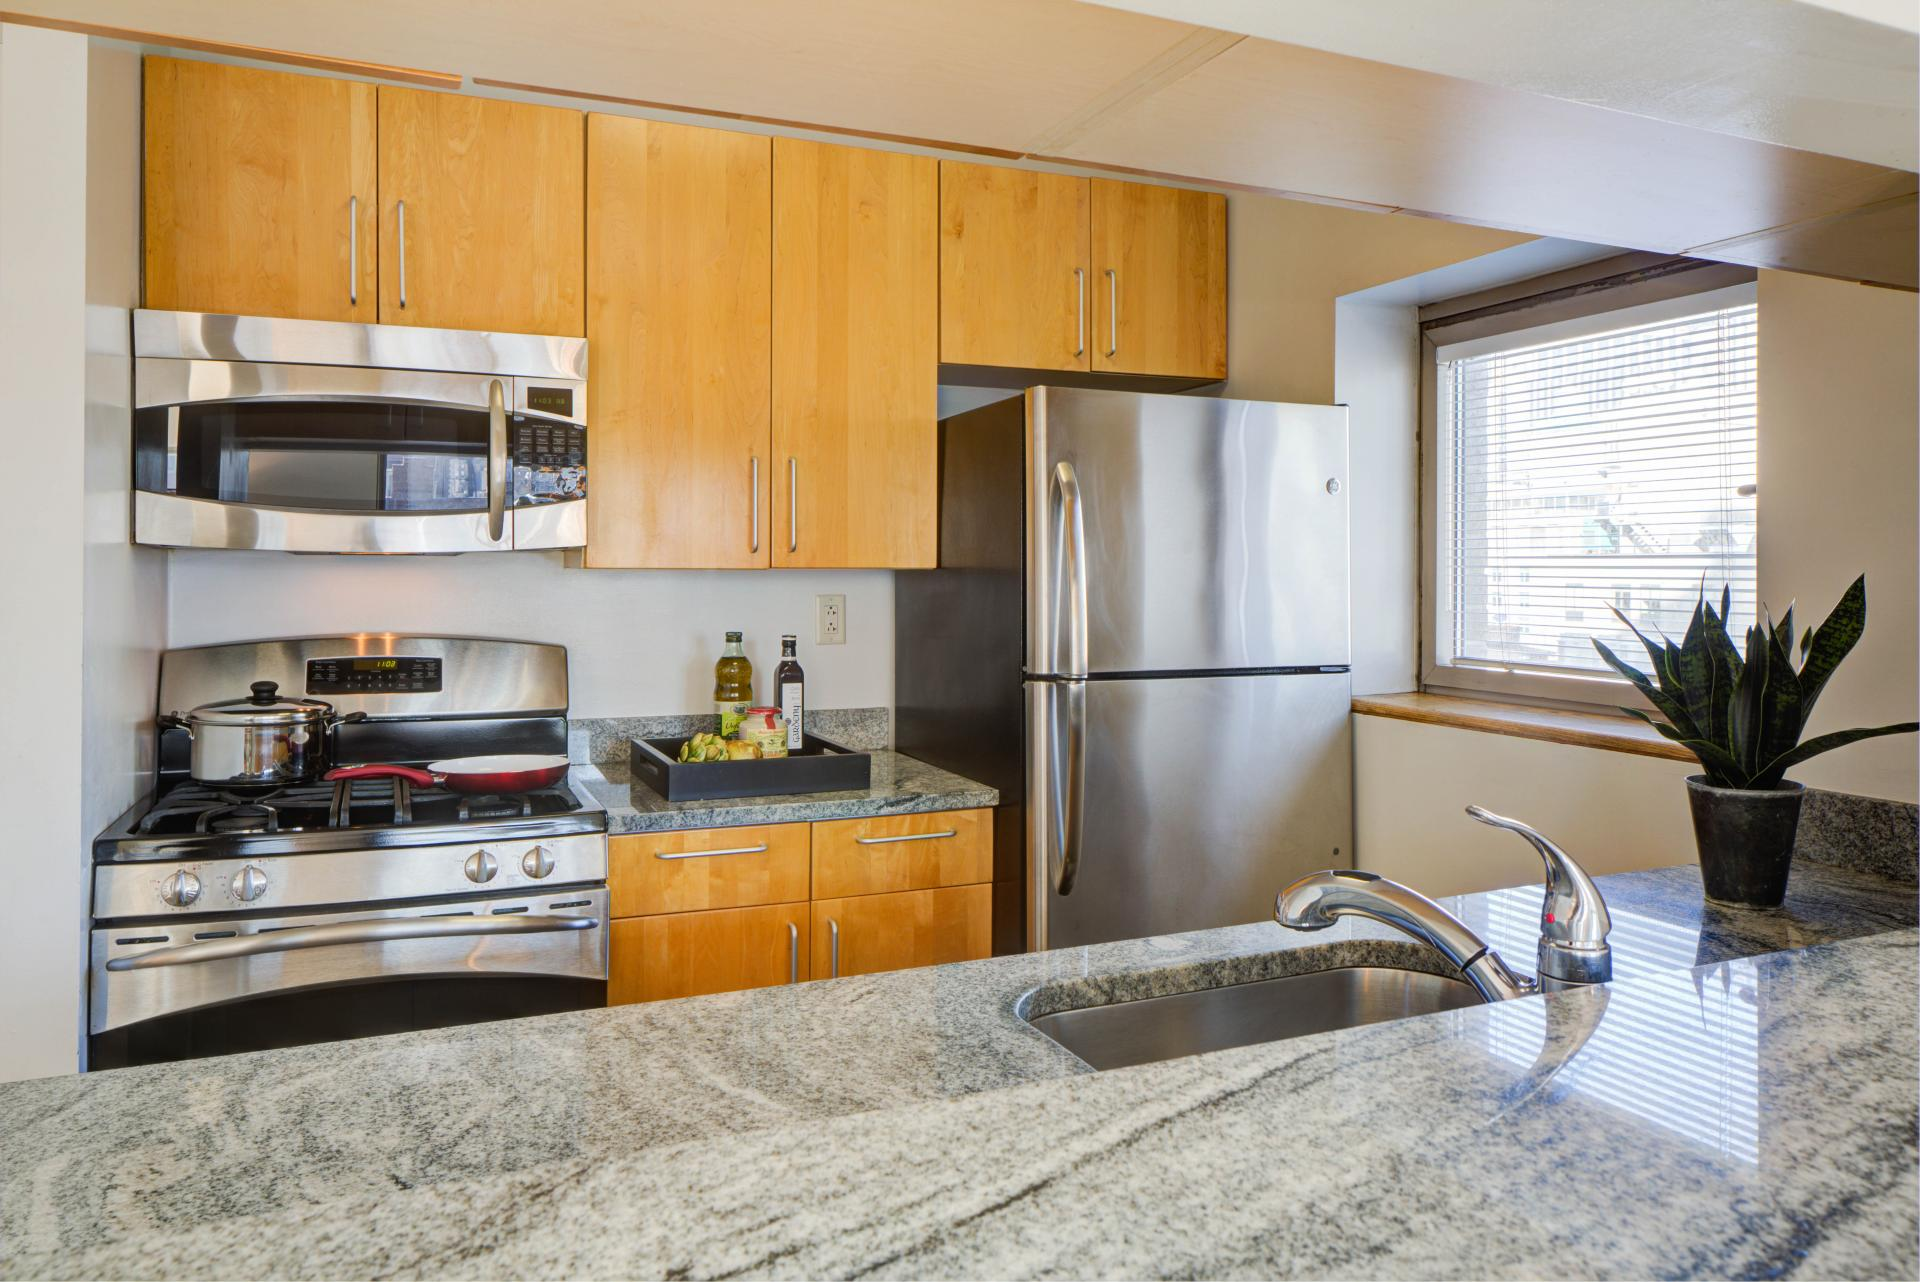 Kitchen at 777 Sixth Avenue Apartments, Chelsea, New York